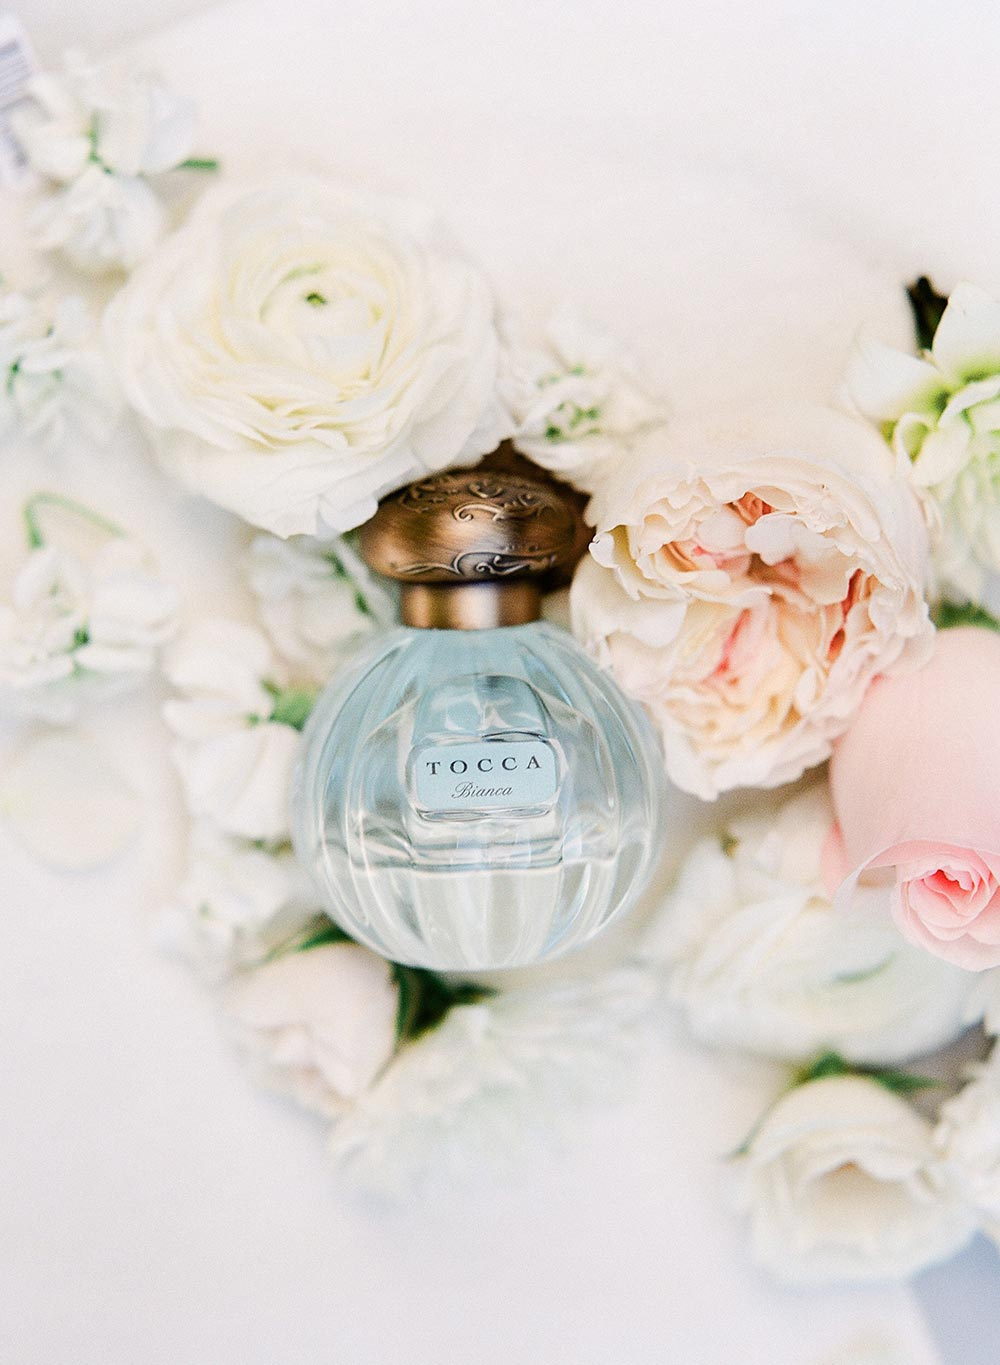 tocca perfume wedding day